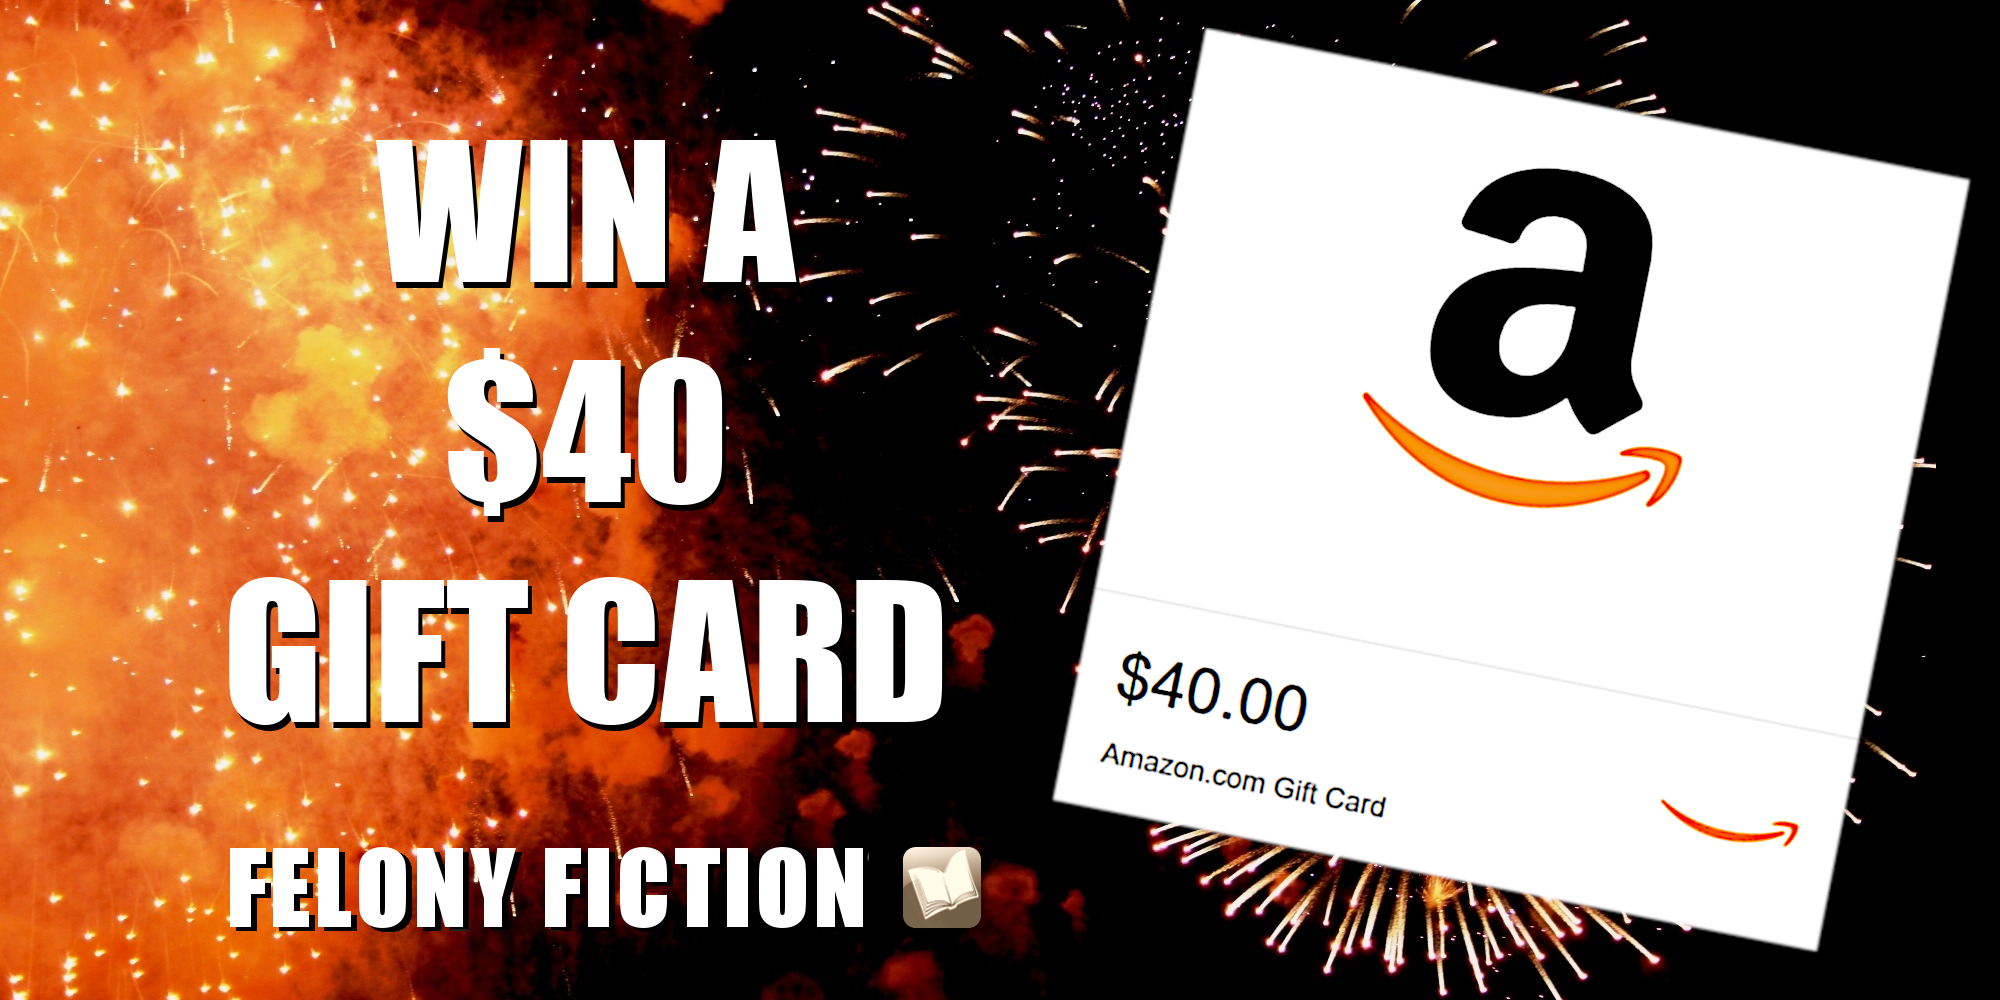 ad promoting chance to win a $40 Amazon gift card shows card displayed over fireworks